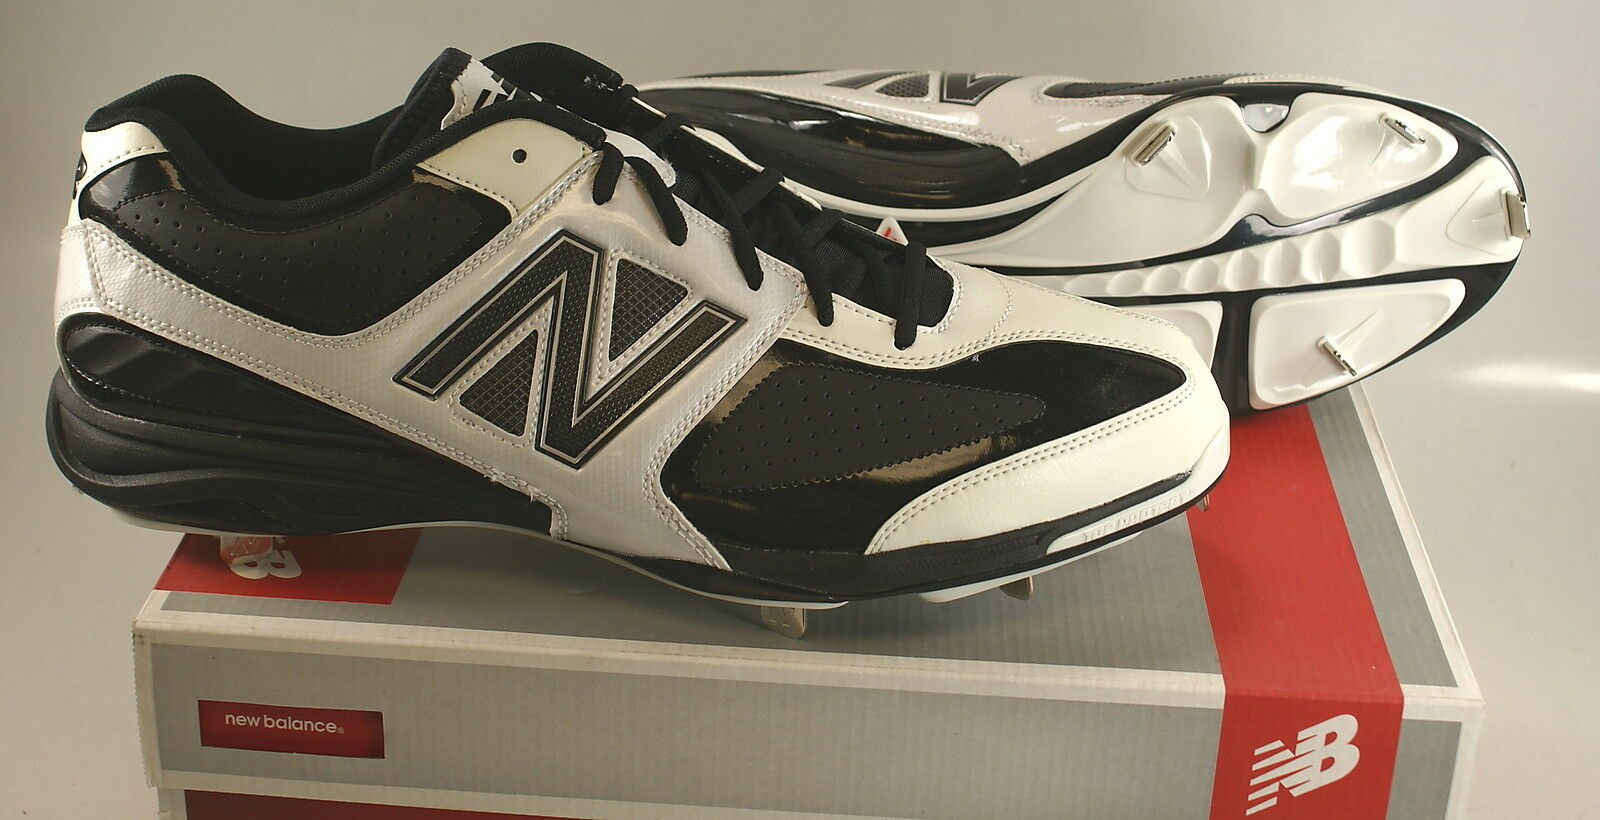 NIB New Balance MB4040LW Baseball Metal Spike Cleats BLACK WHITE Mens US 16 2E